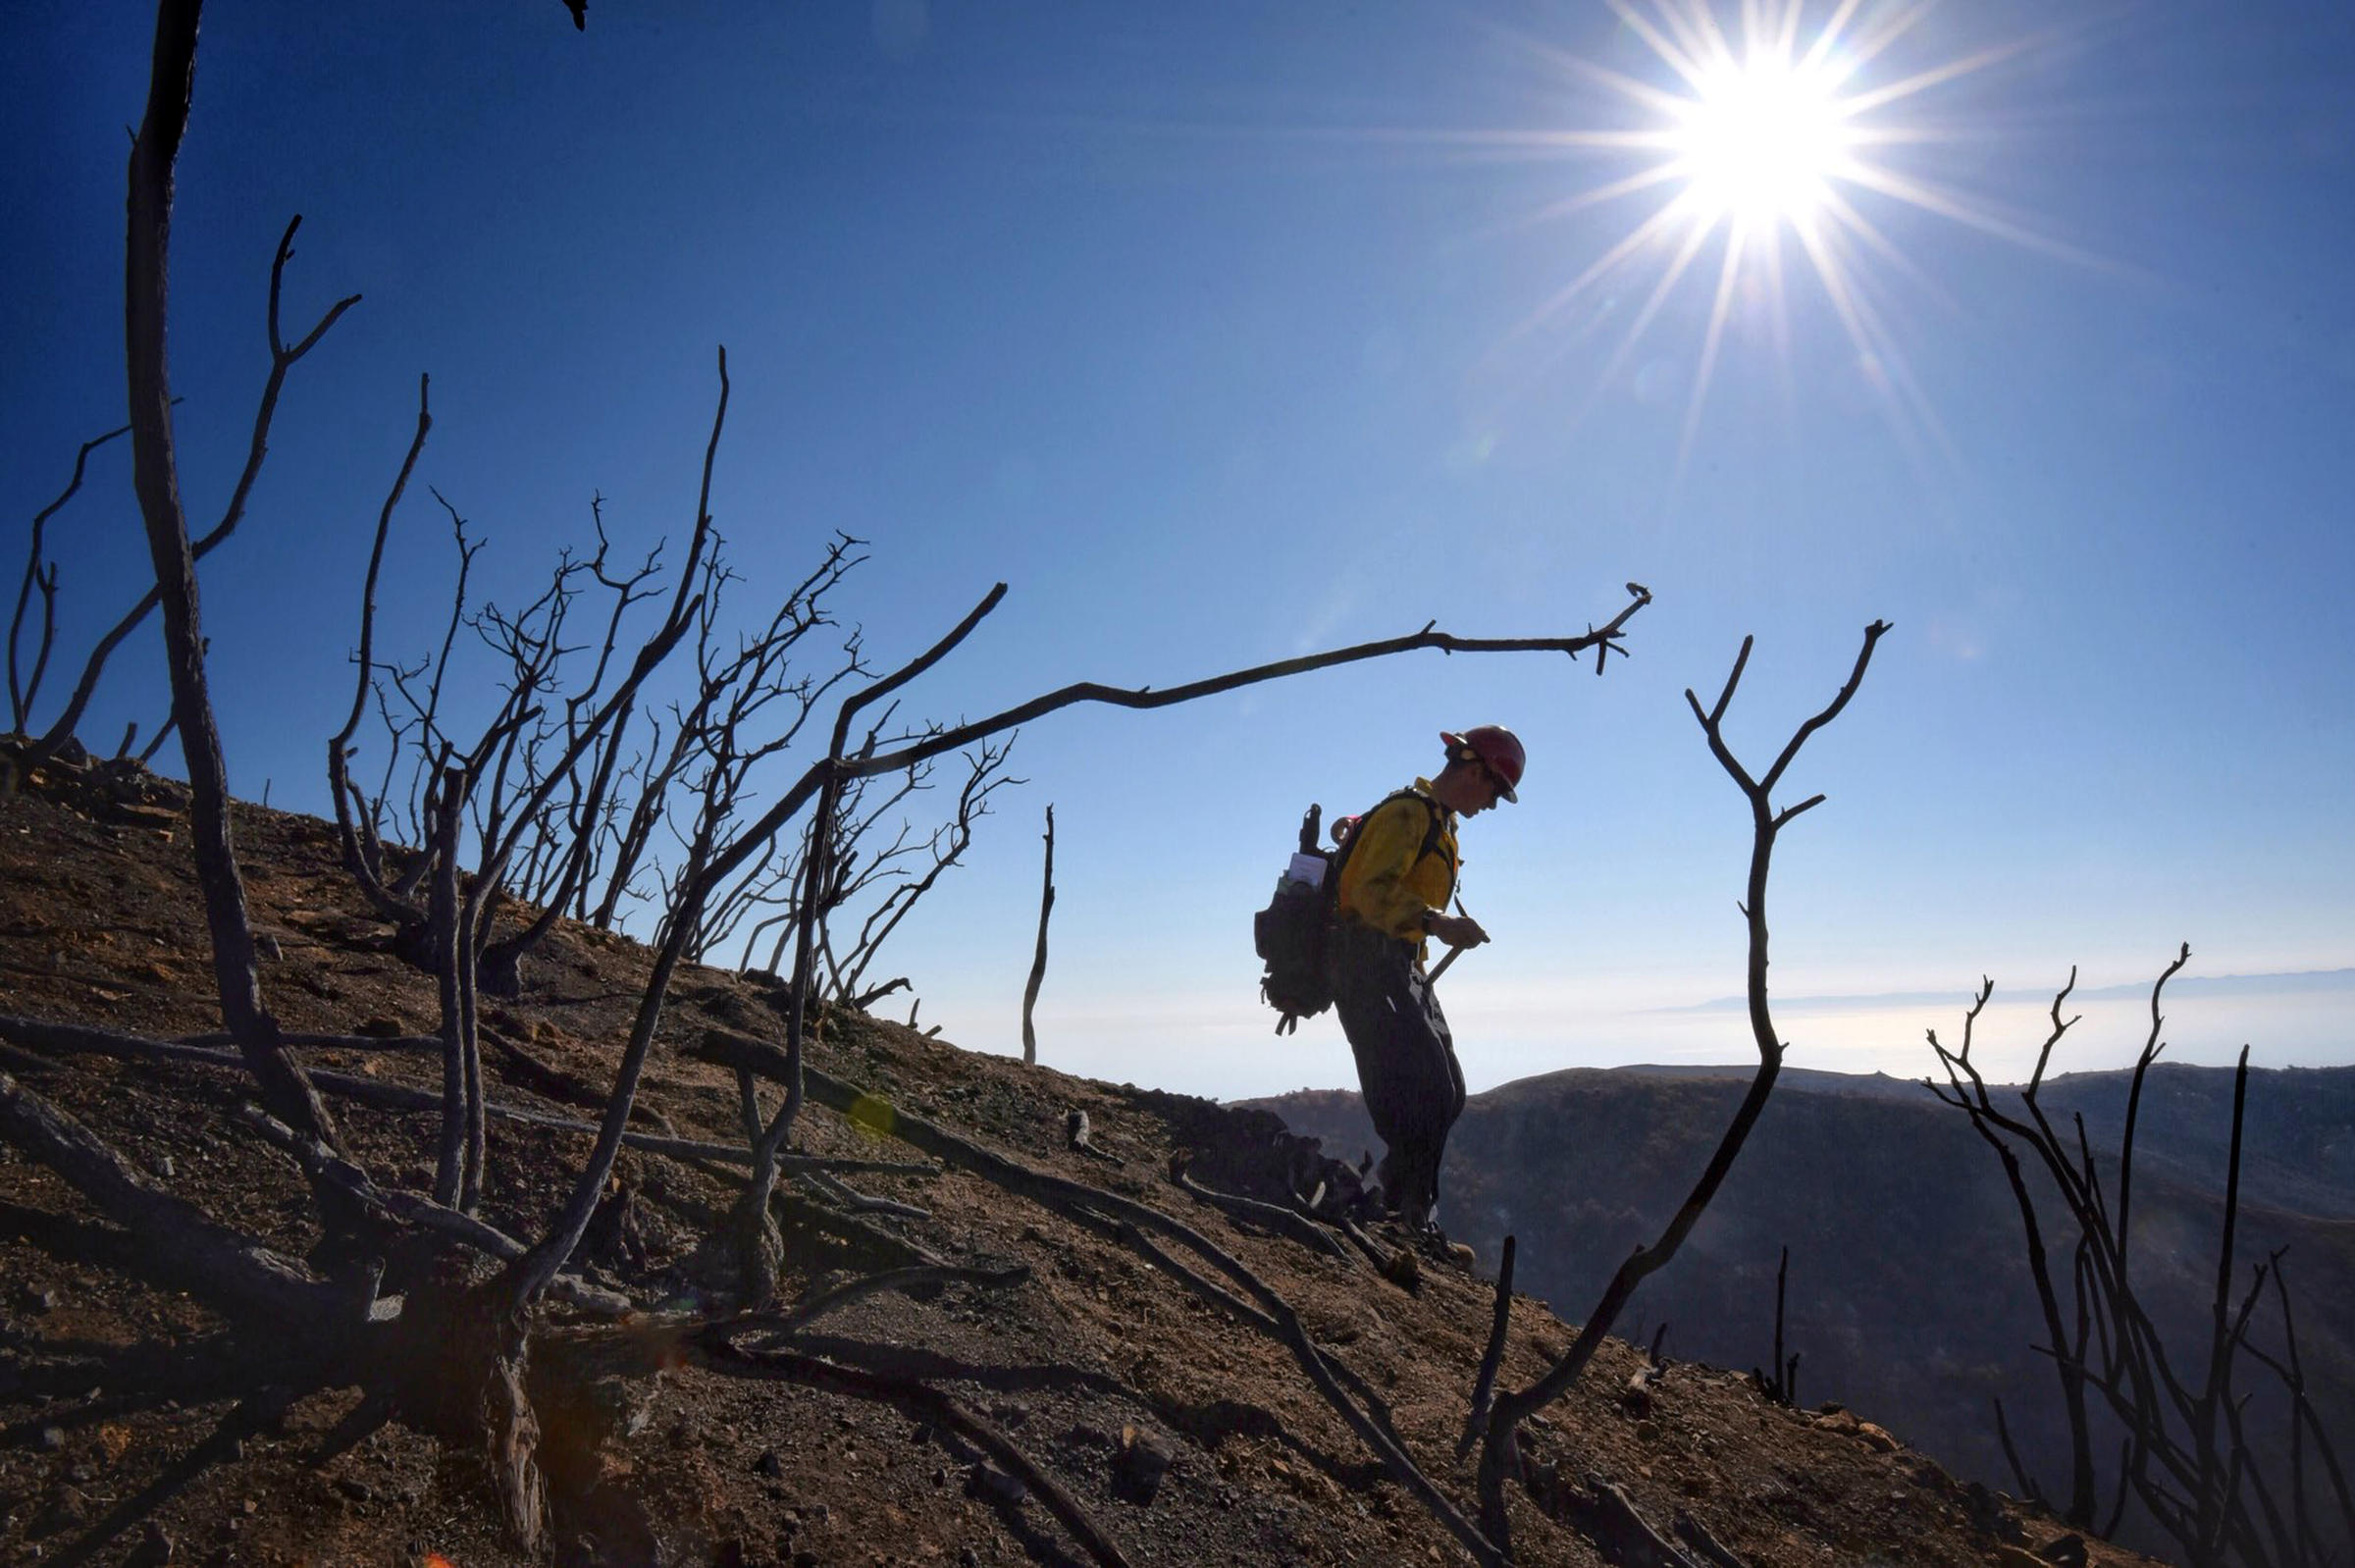 Santa Barbara County Fire Capt. Ryan Thomas hikes down steep terrain rendered barren by the Thomas Fire last month. Authorities announced Friday they had reached 100 percent containment of the fire which is the largest in modern California history